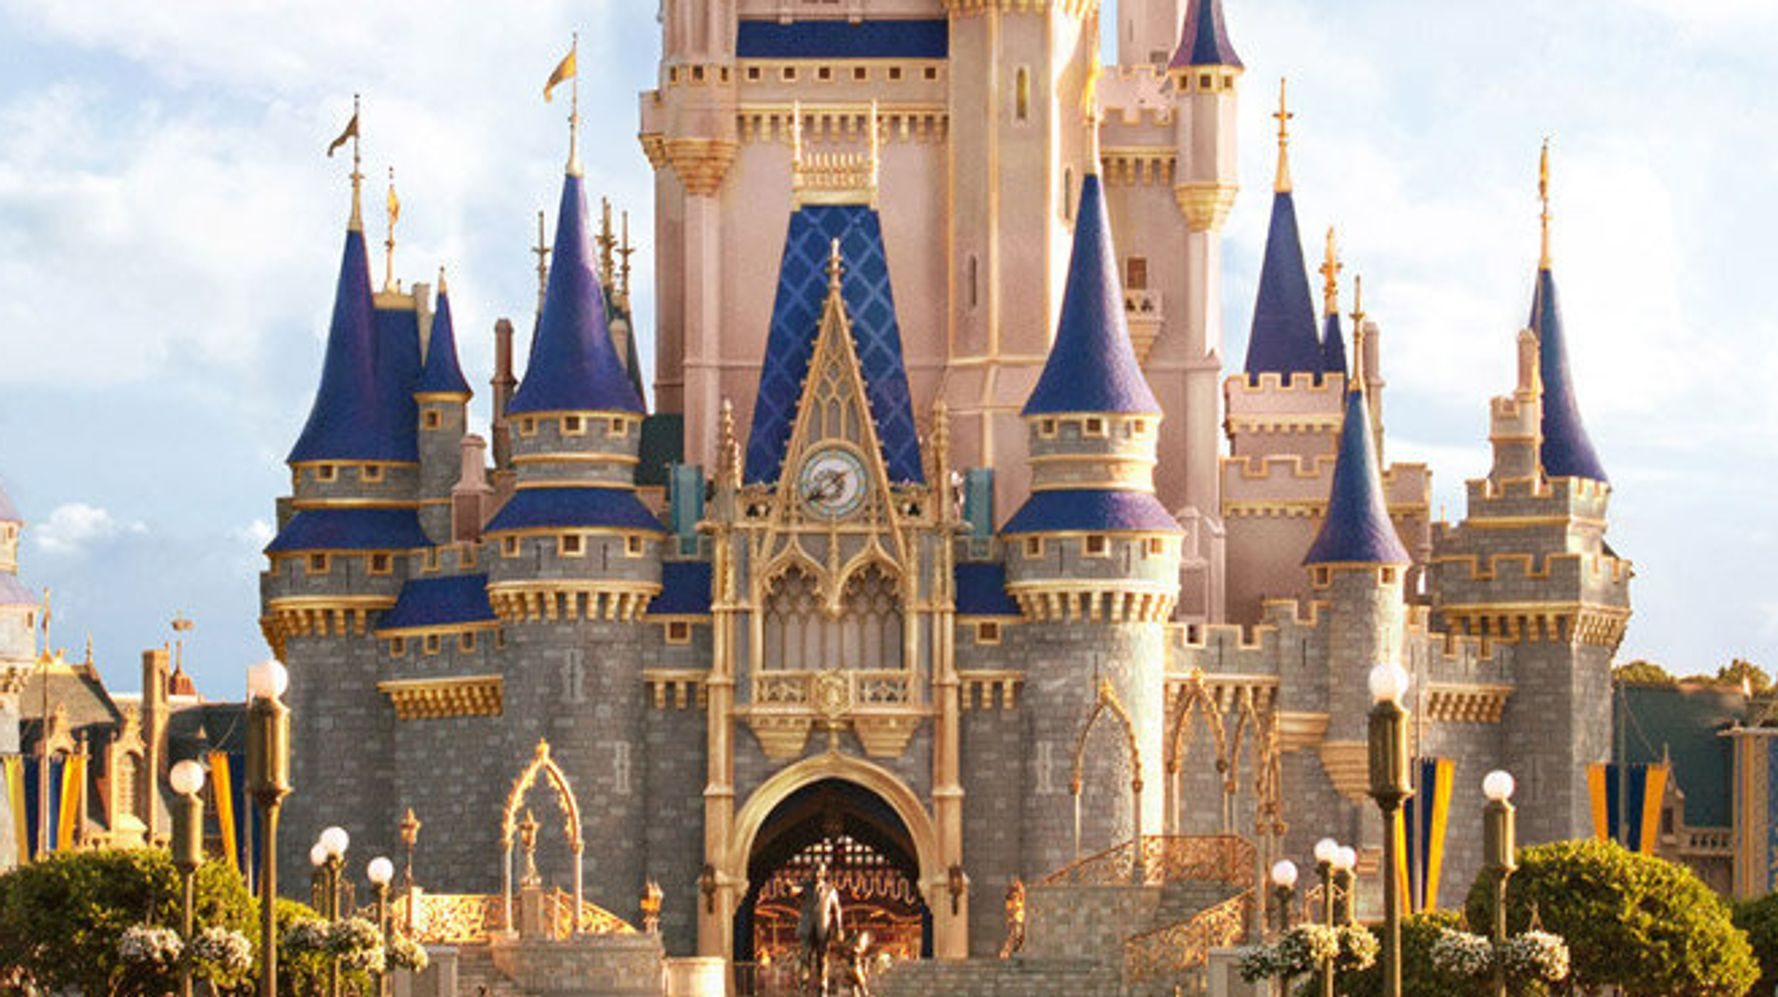 Walt Disney World's Cinderella Castle Is Getting A Major Makeover